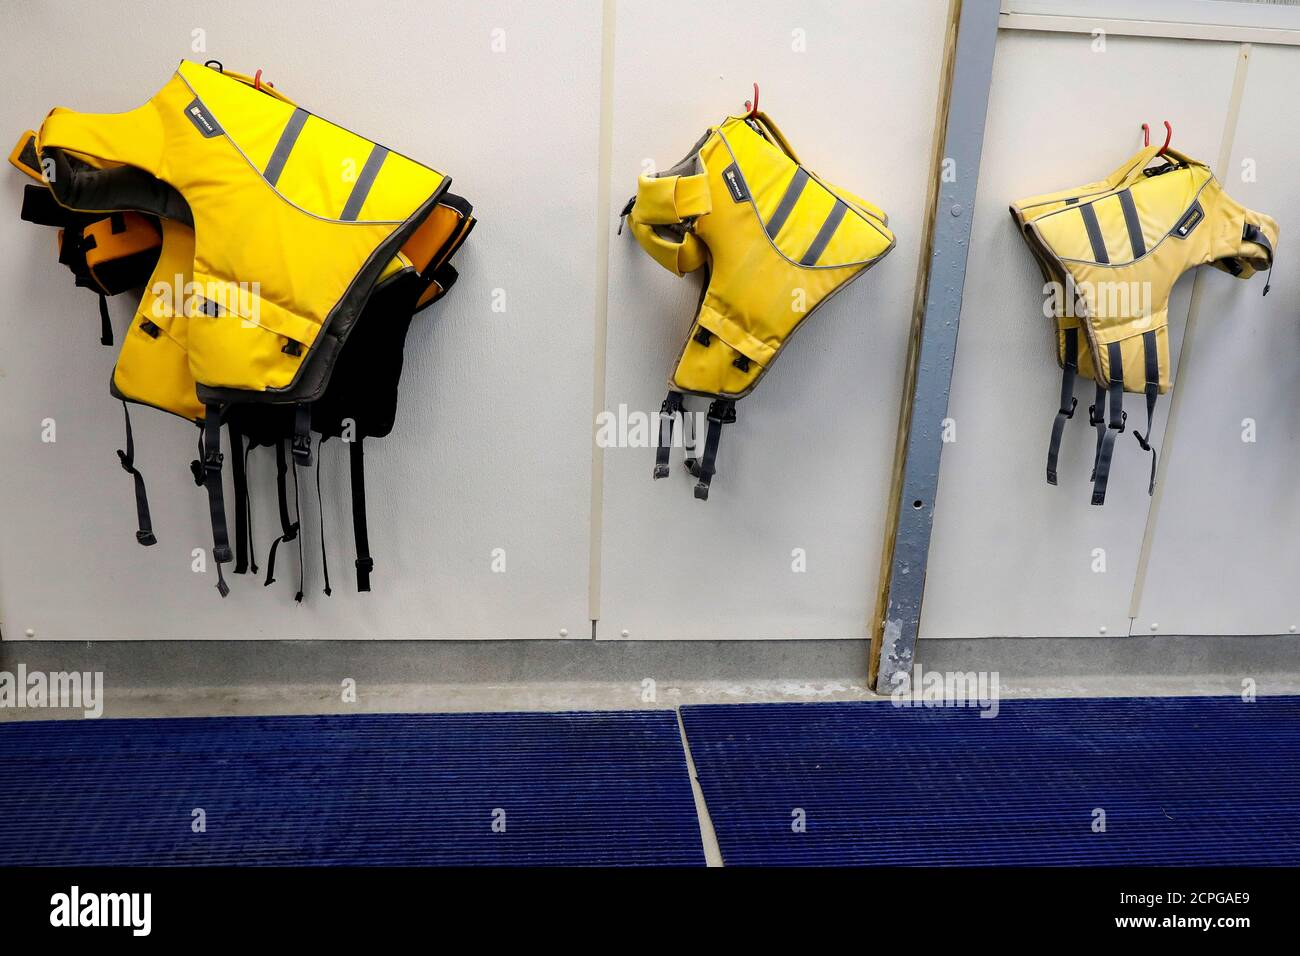 Flotation devices are hung by an indoor pool for dogs to use during a 'Wuffstock' Halloween event, at the Morristown Animal Inn in Morristown, New Jersey, U.S., October 26, 2018. Picture taken October 26, 2018. REUTERS/Brendan McDermid Stock Photo